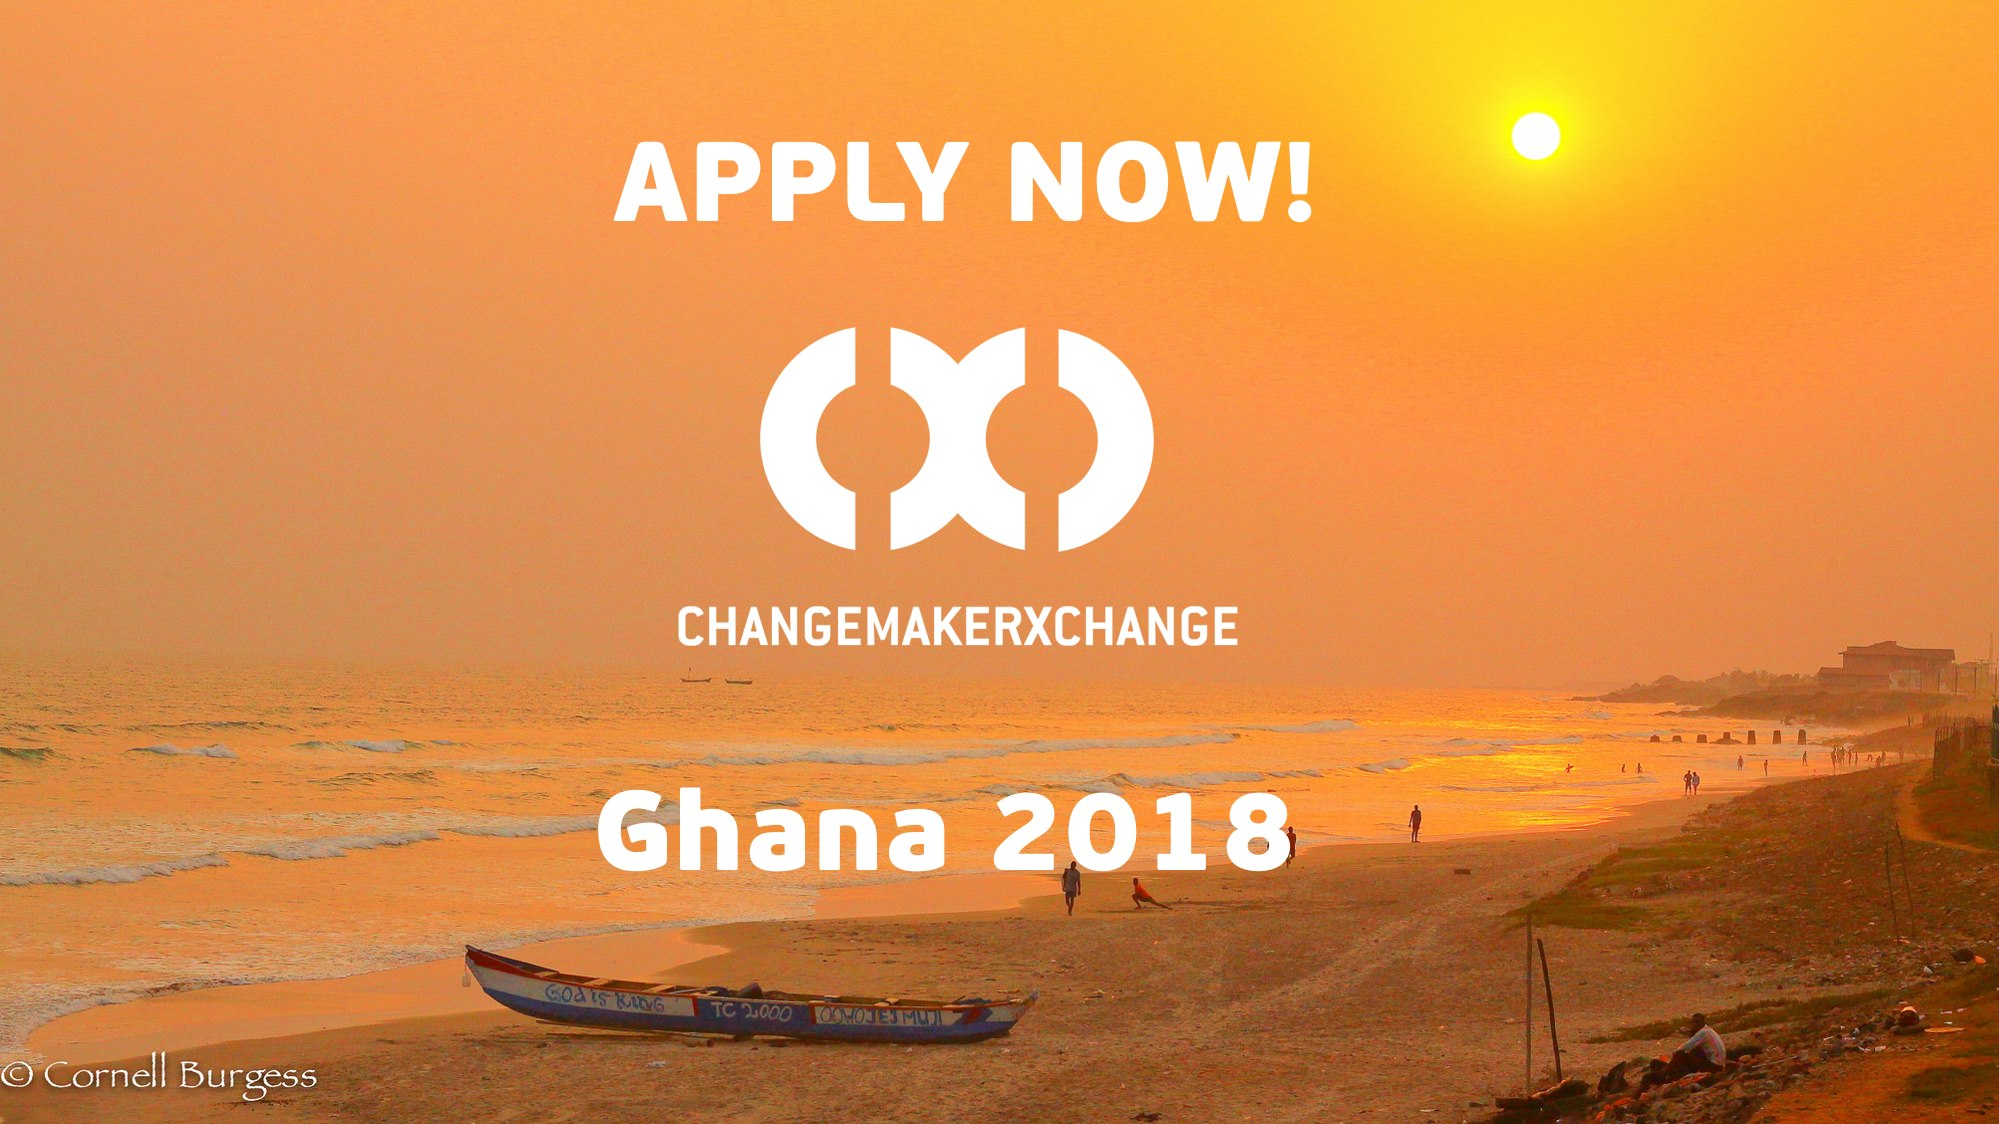 Ashoka/Robert Bosch Stiftung ChangemakerXchange Summit in West Africa 2018 (Fully-funded to Ghana)